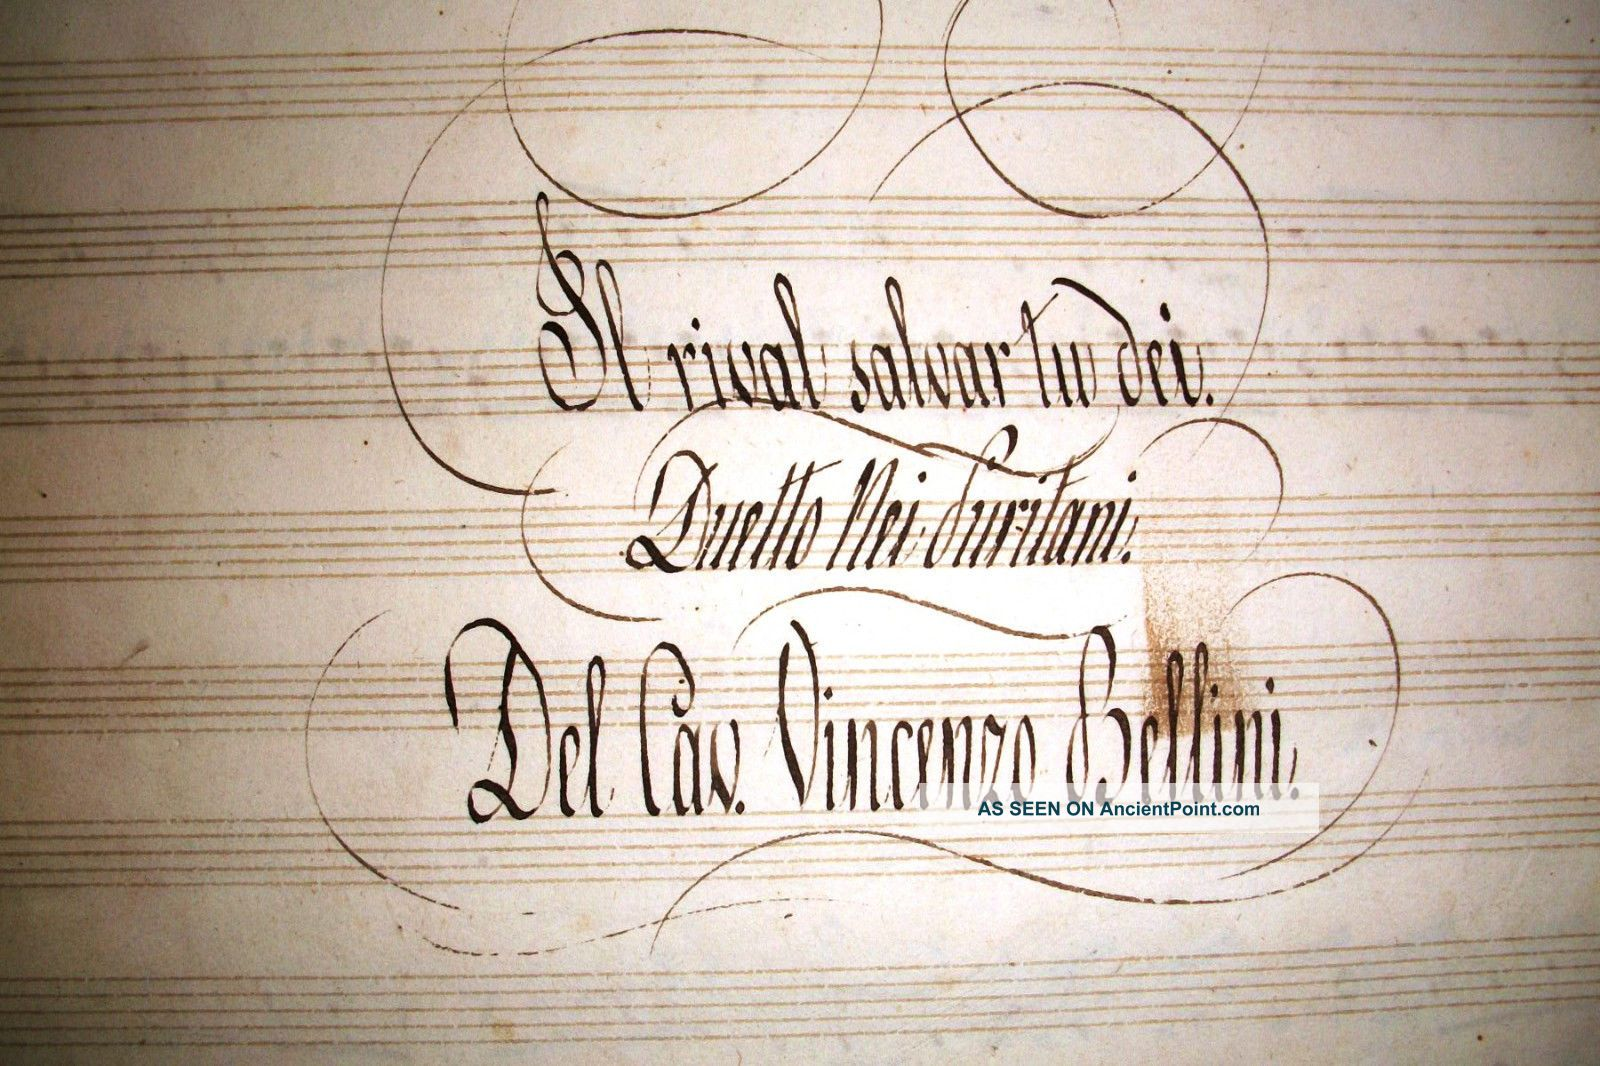 Very Rare Manuscript Music Score For Piano From